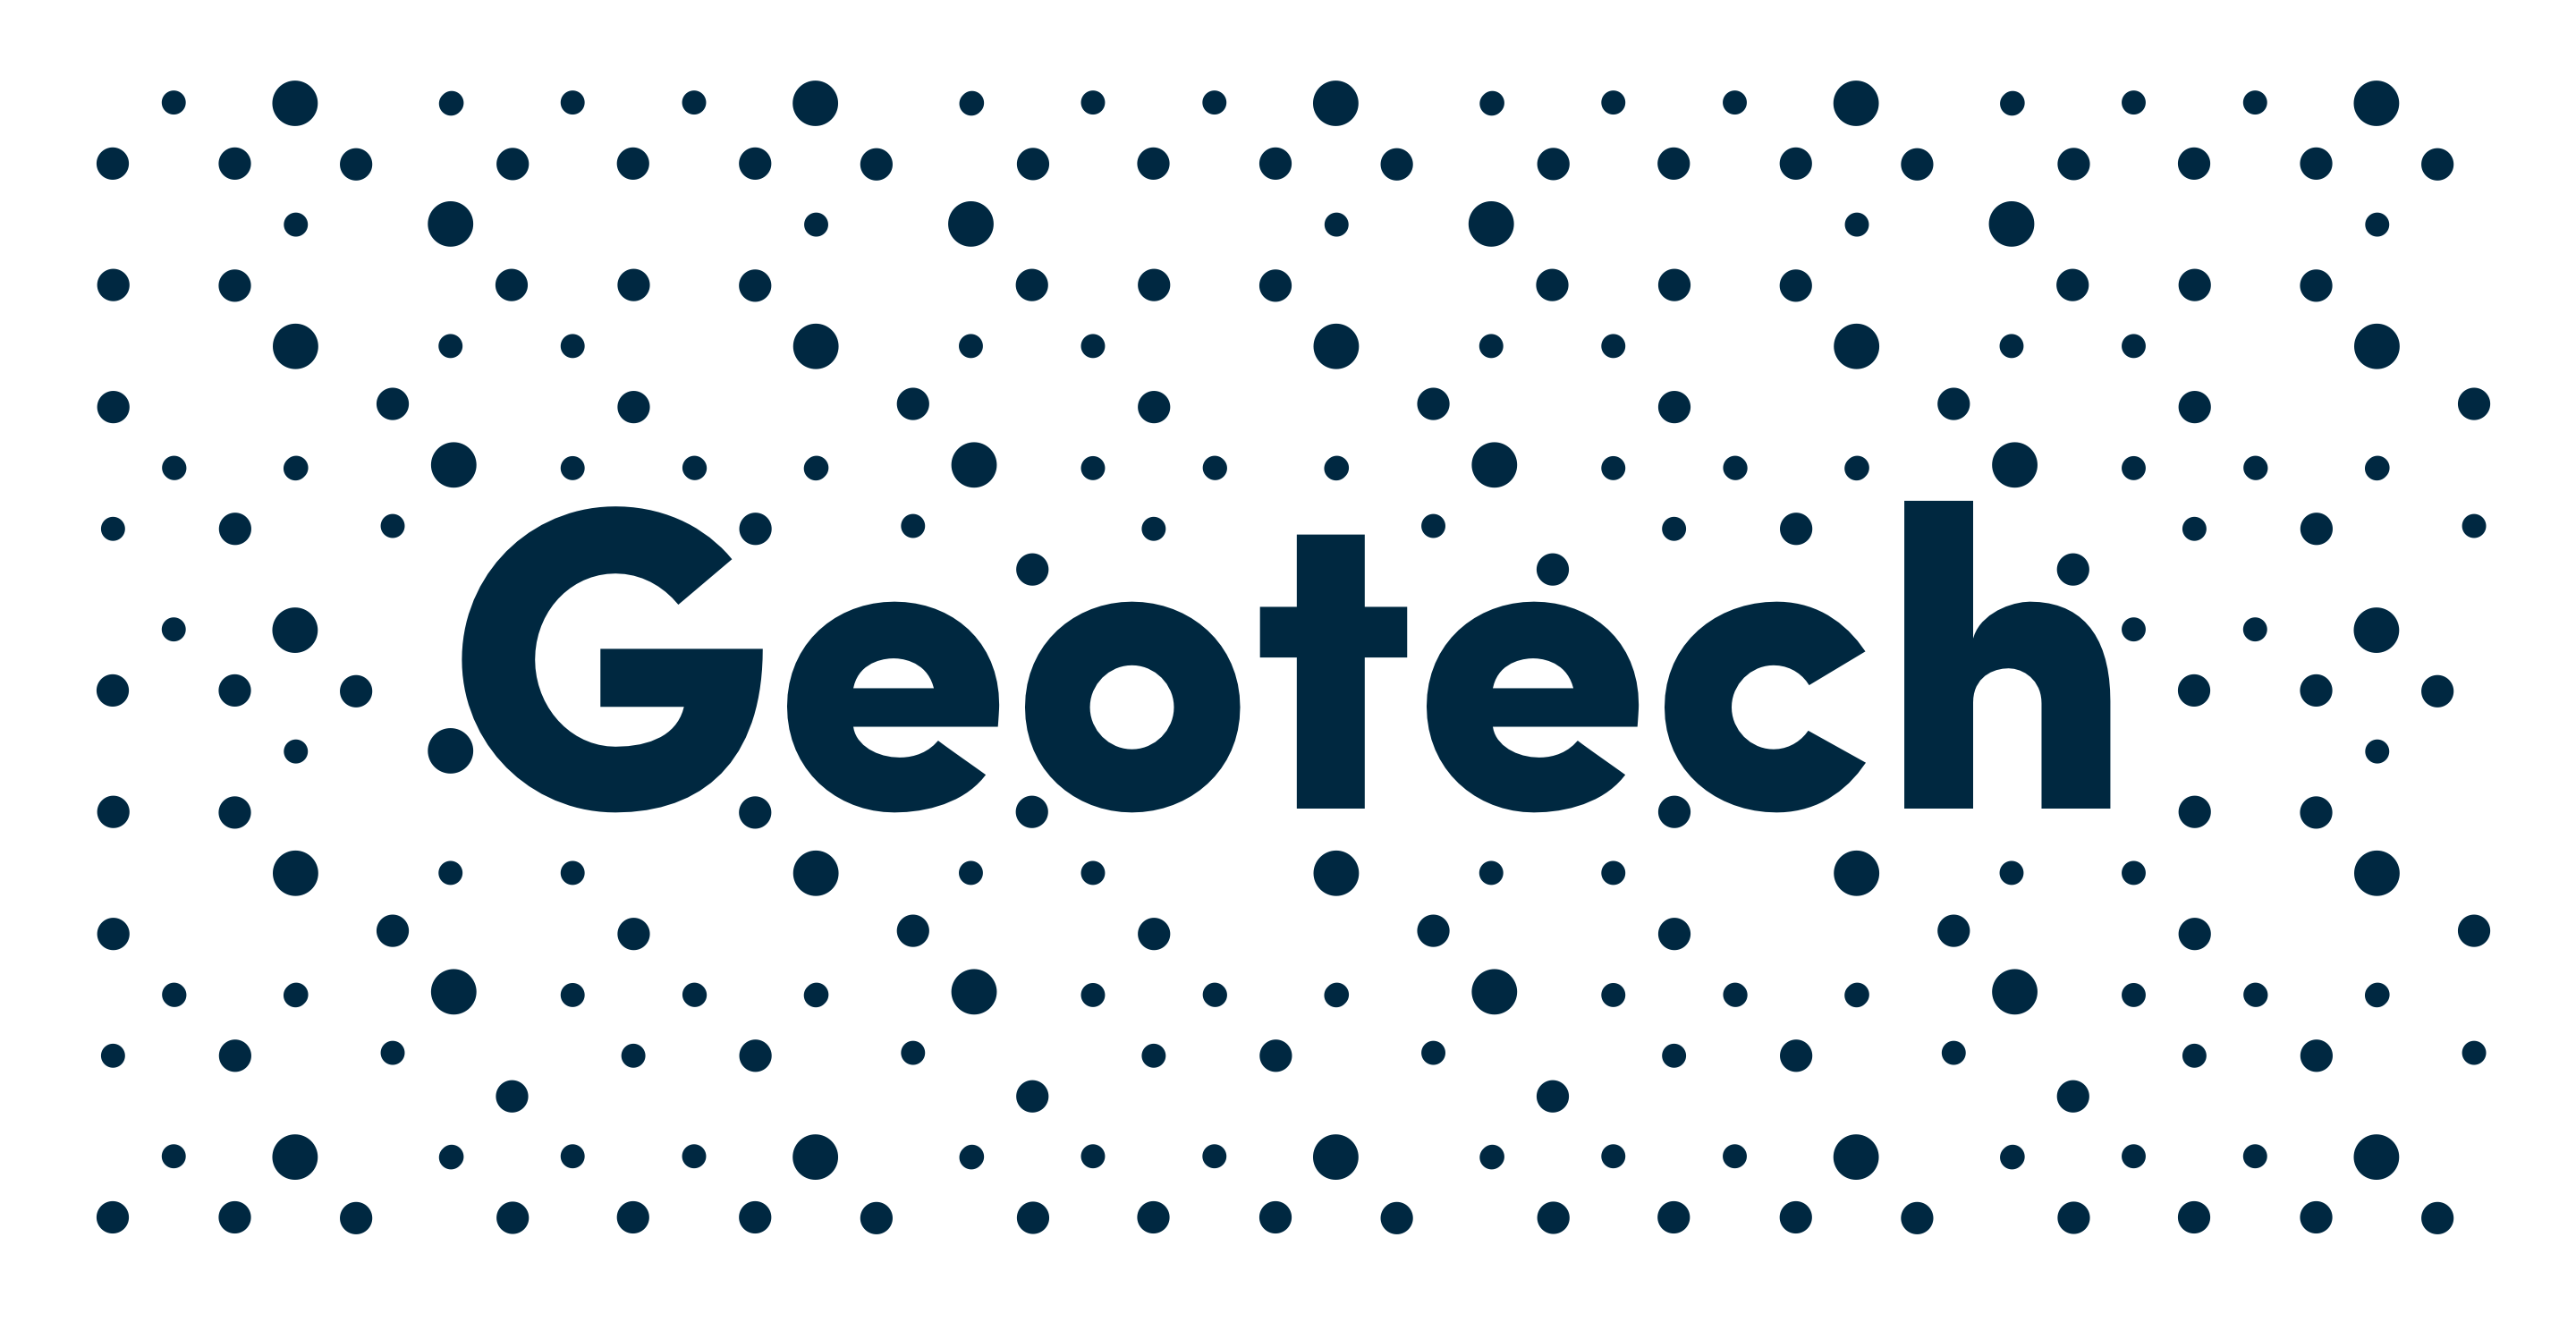 Digital strategy and design for Sigicom brand. Material from the process. Geotech in blue with pattern design on white background.